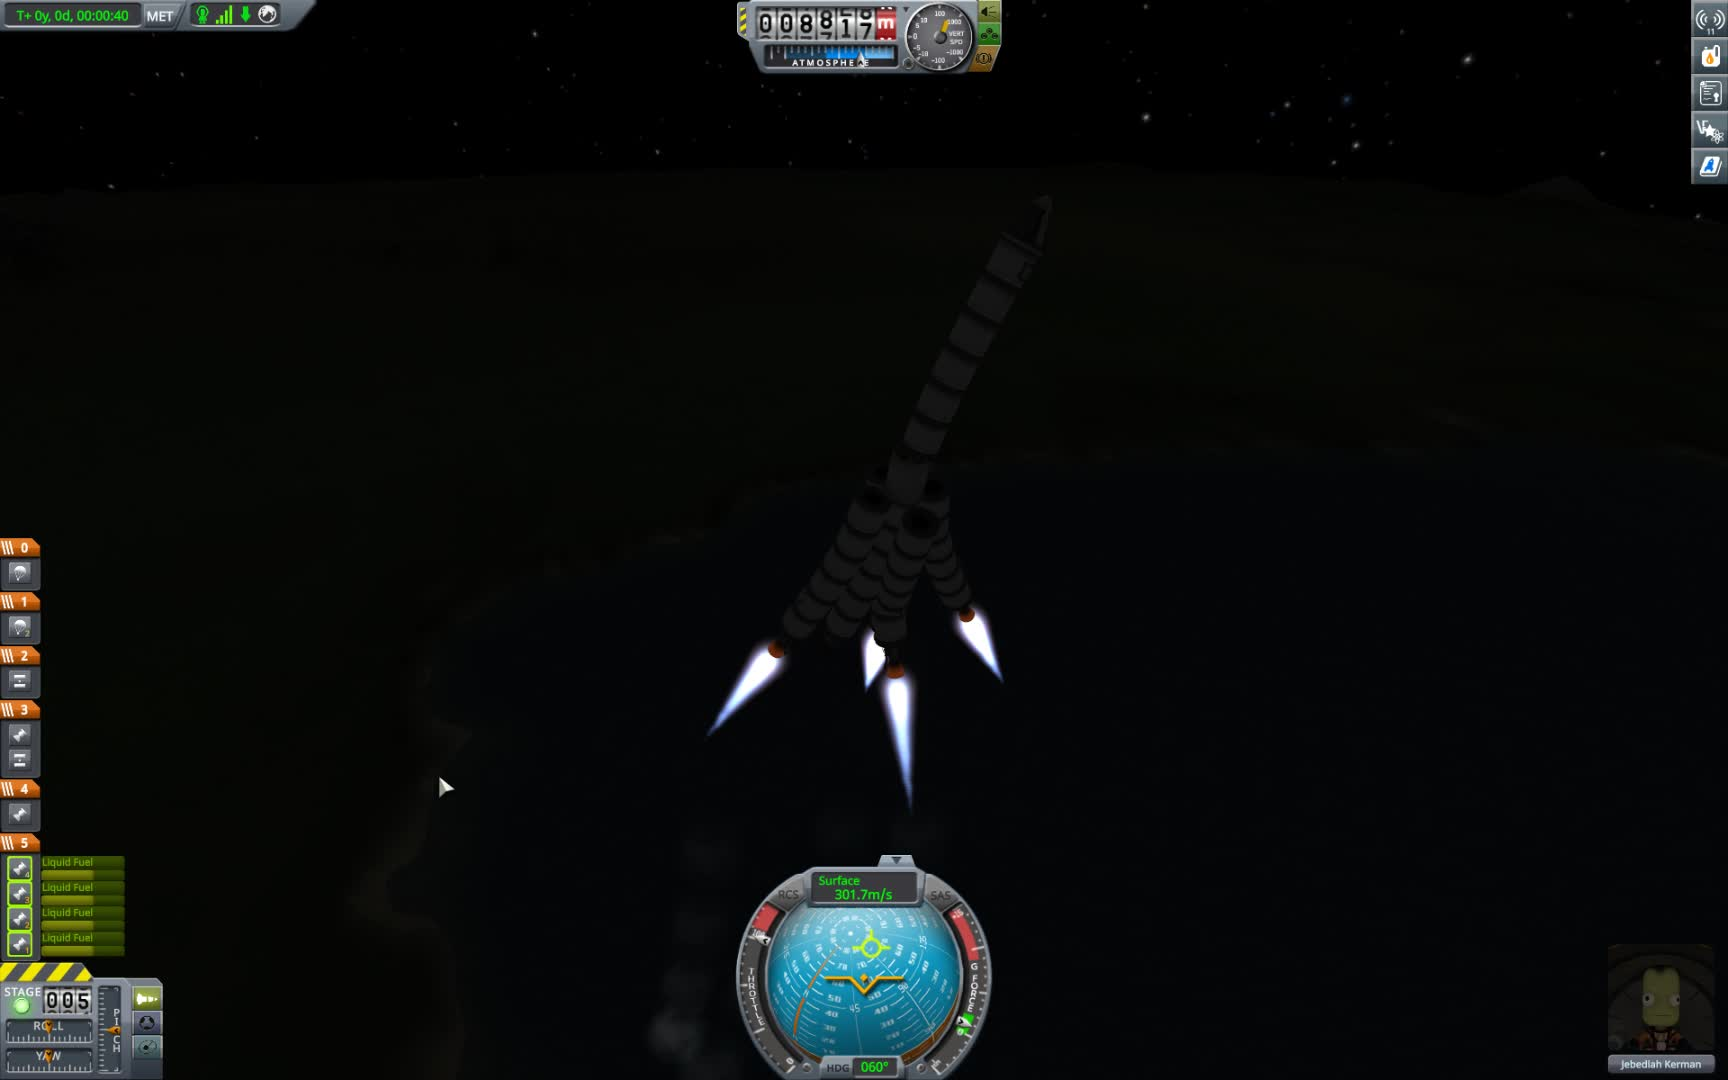 kerbalspaceprogram, Kerbal Space Program 2018.10.14 - 15.46.44.03 GIFs